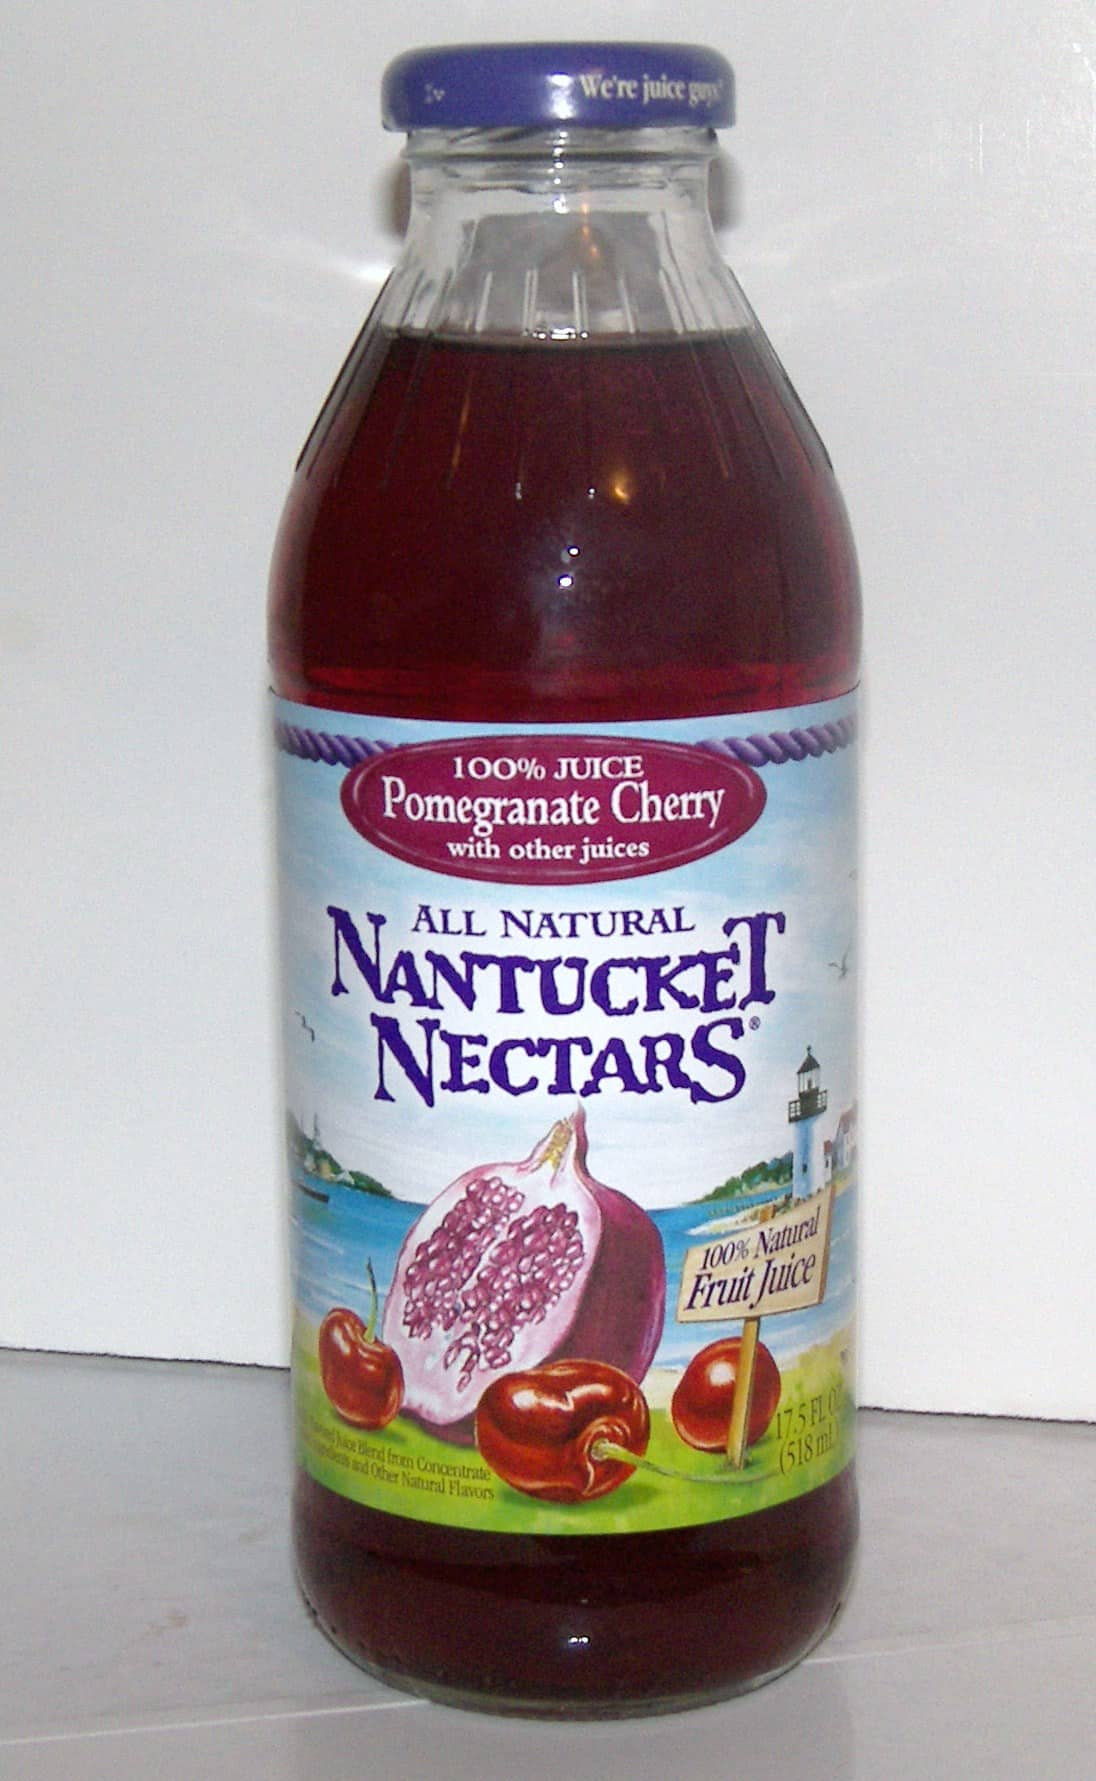 nantucket nectars Details allow your customers to enjoy the crisp, refreshing blend of peach and orange with this nantucket nectars 16 oz peach orange juice made with 100% juice and all-natural flavors, this drink provides the perfect balance of tart and tangy notes, ensuring a distinct, fulfilling flavor.